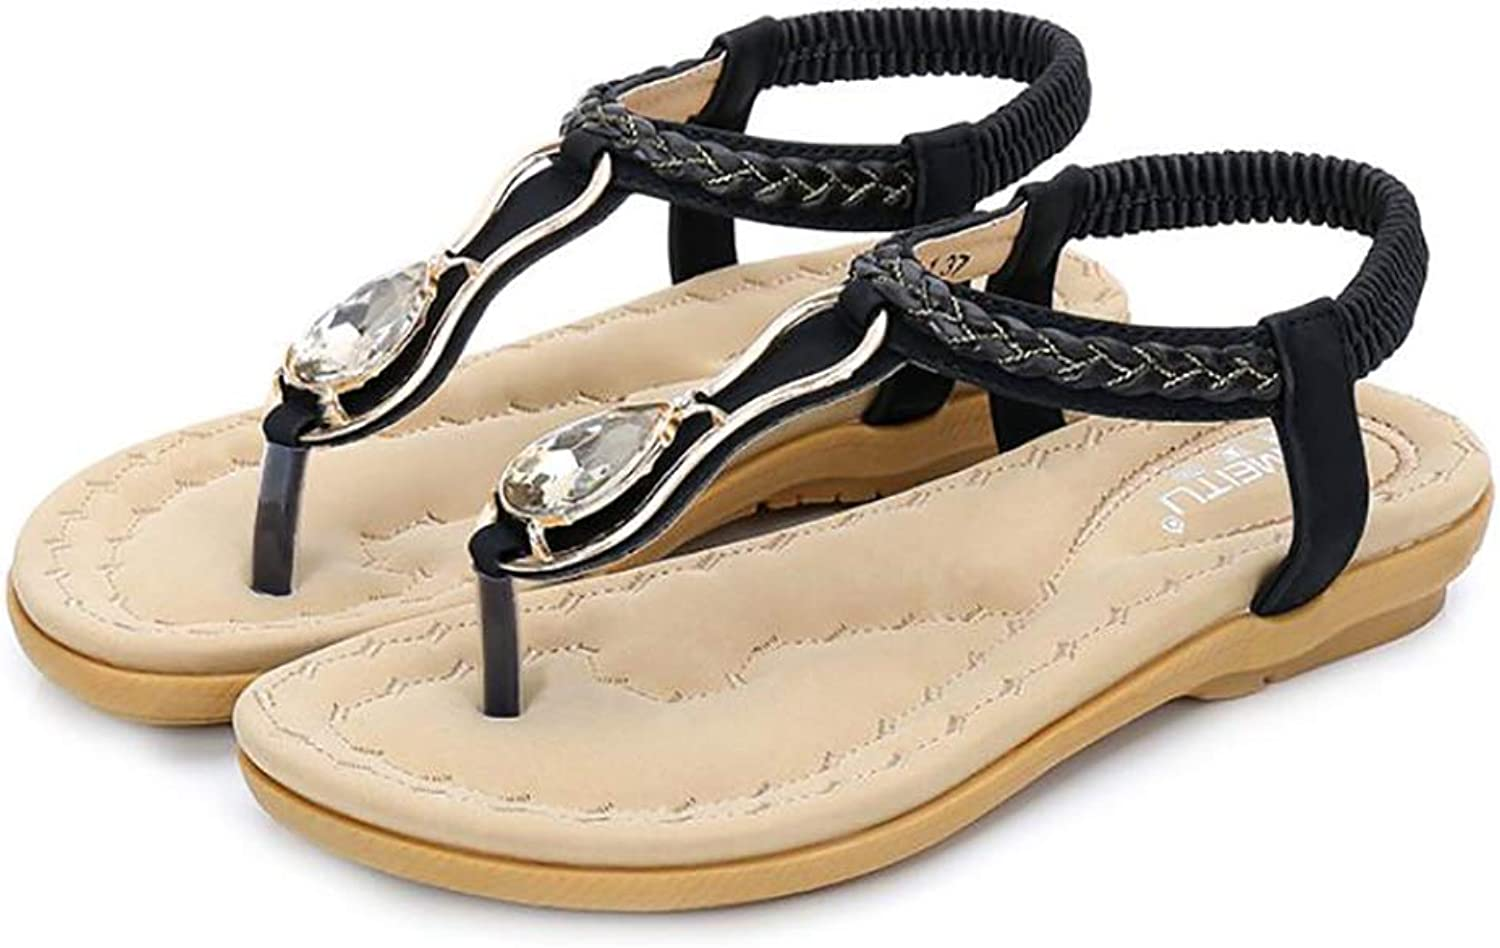 Women Summer Sandals Low Flat Heel Flip Flop Beach Party New Bohemia Slipper,Black,37